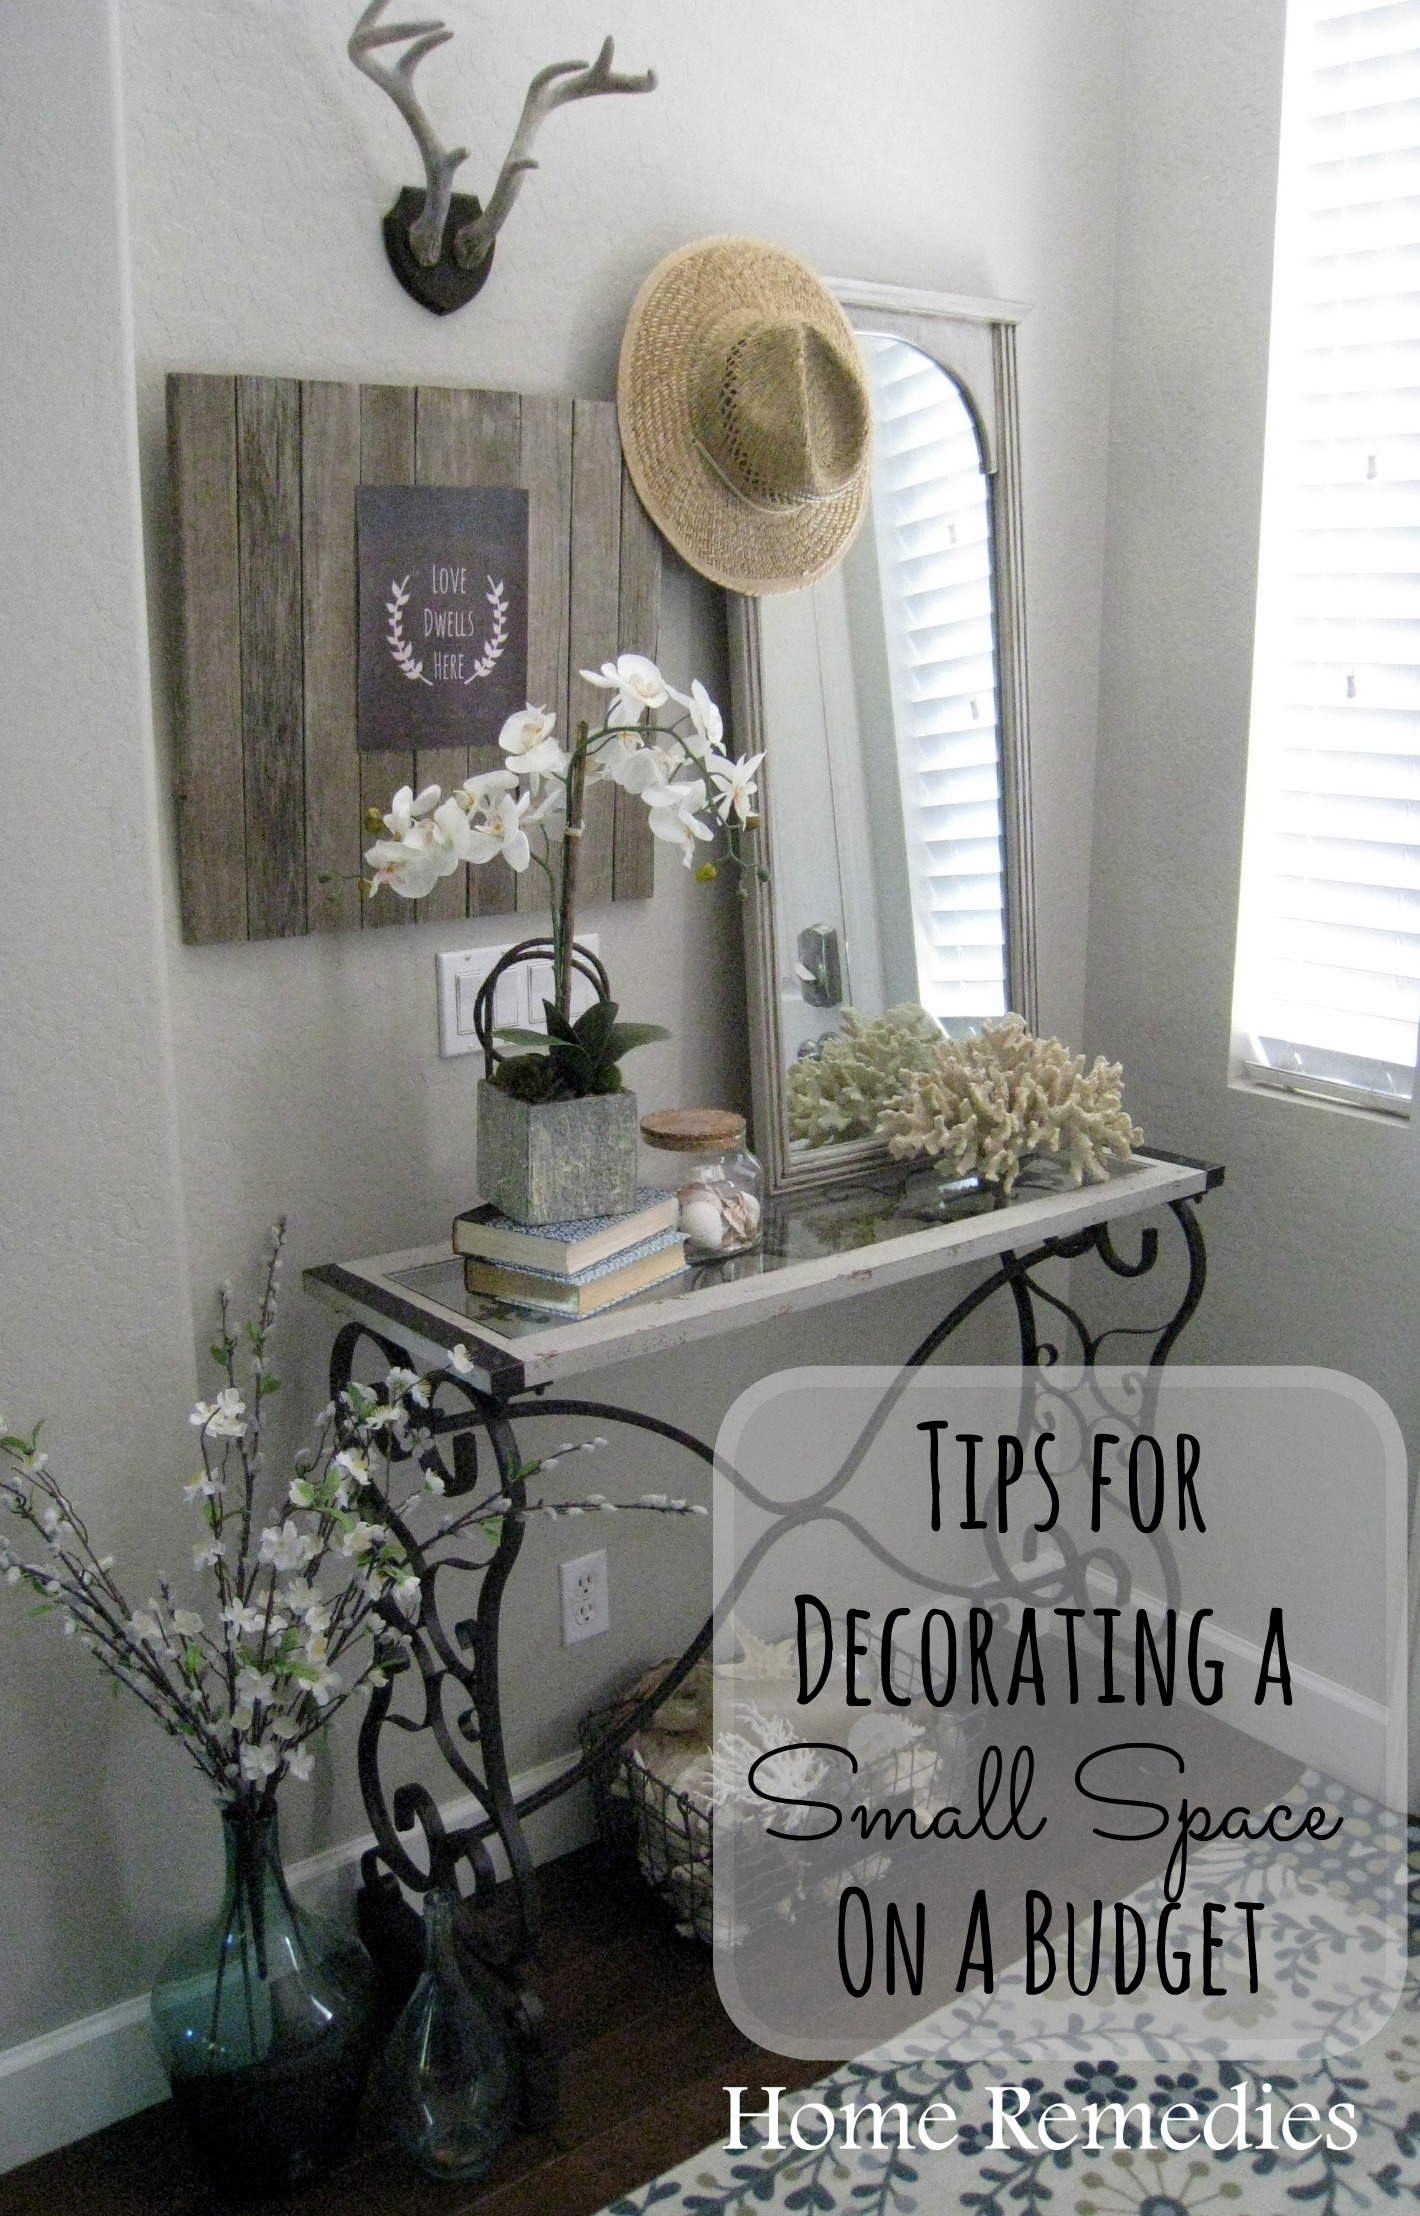 ado here are my top tips for decorating a small space on a budget